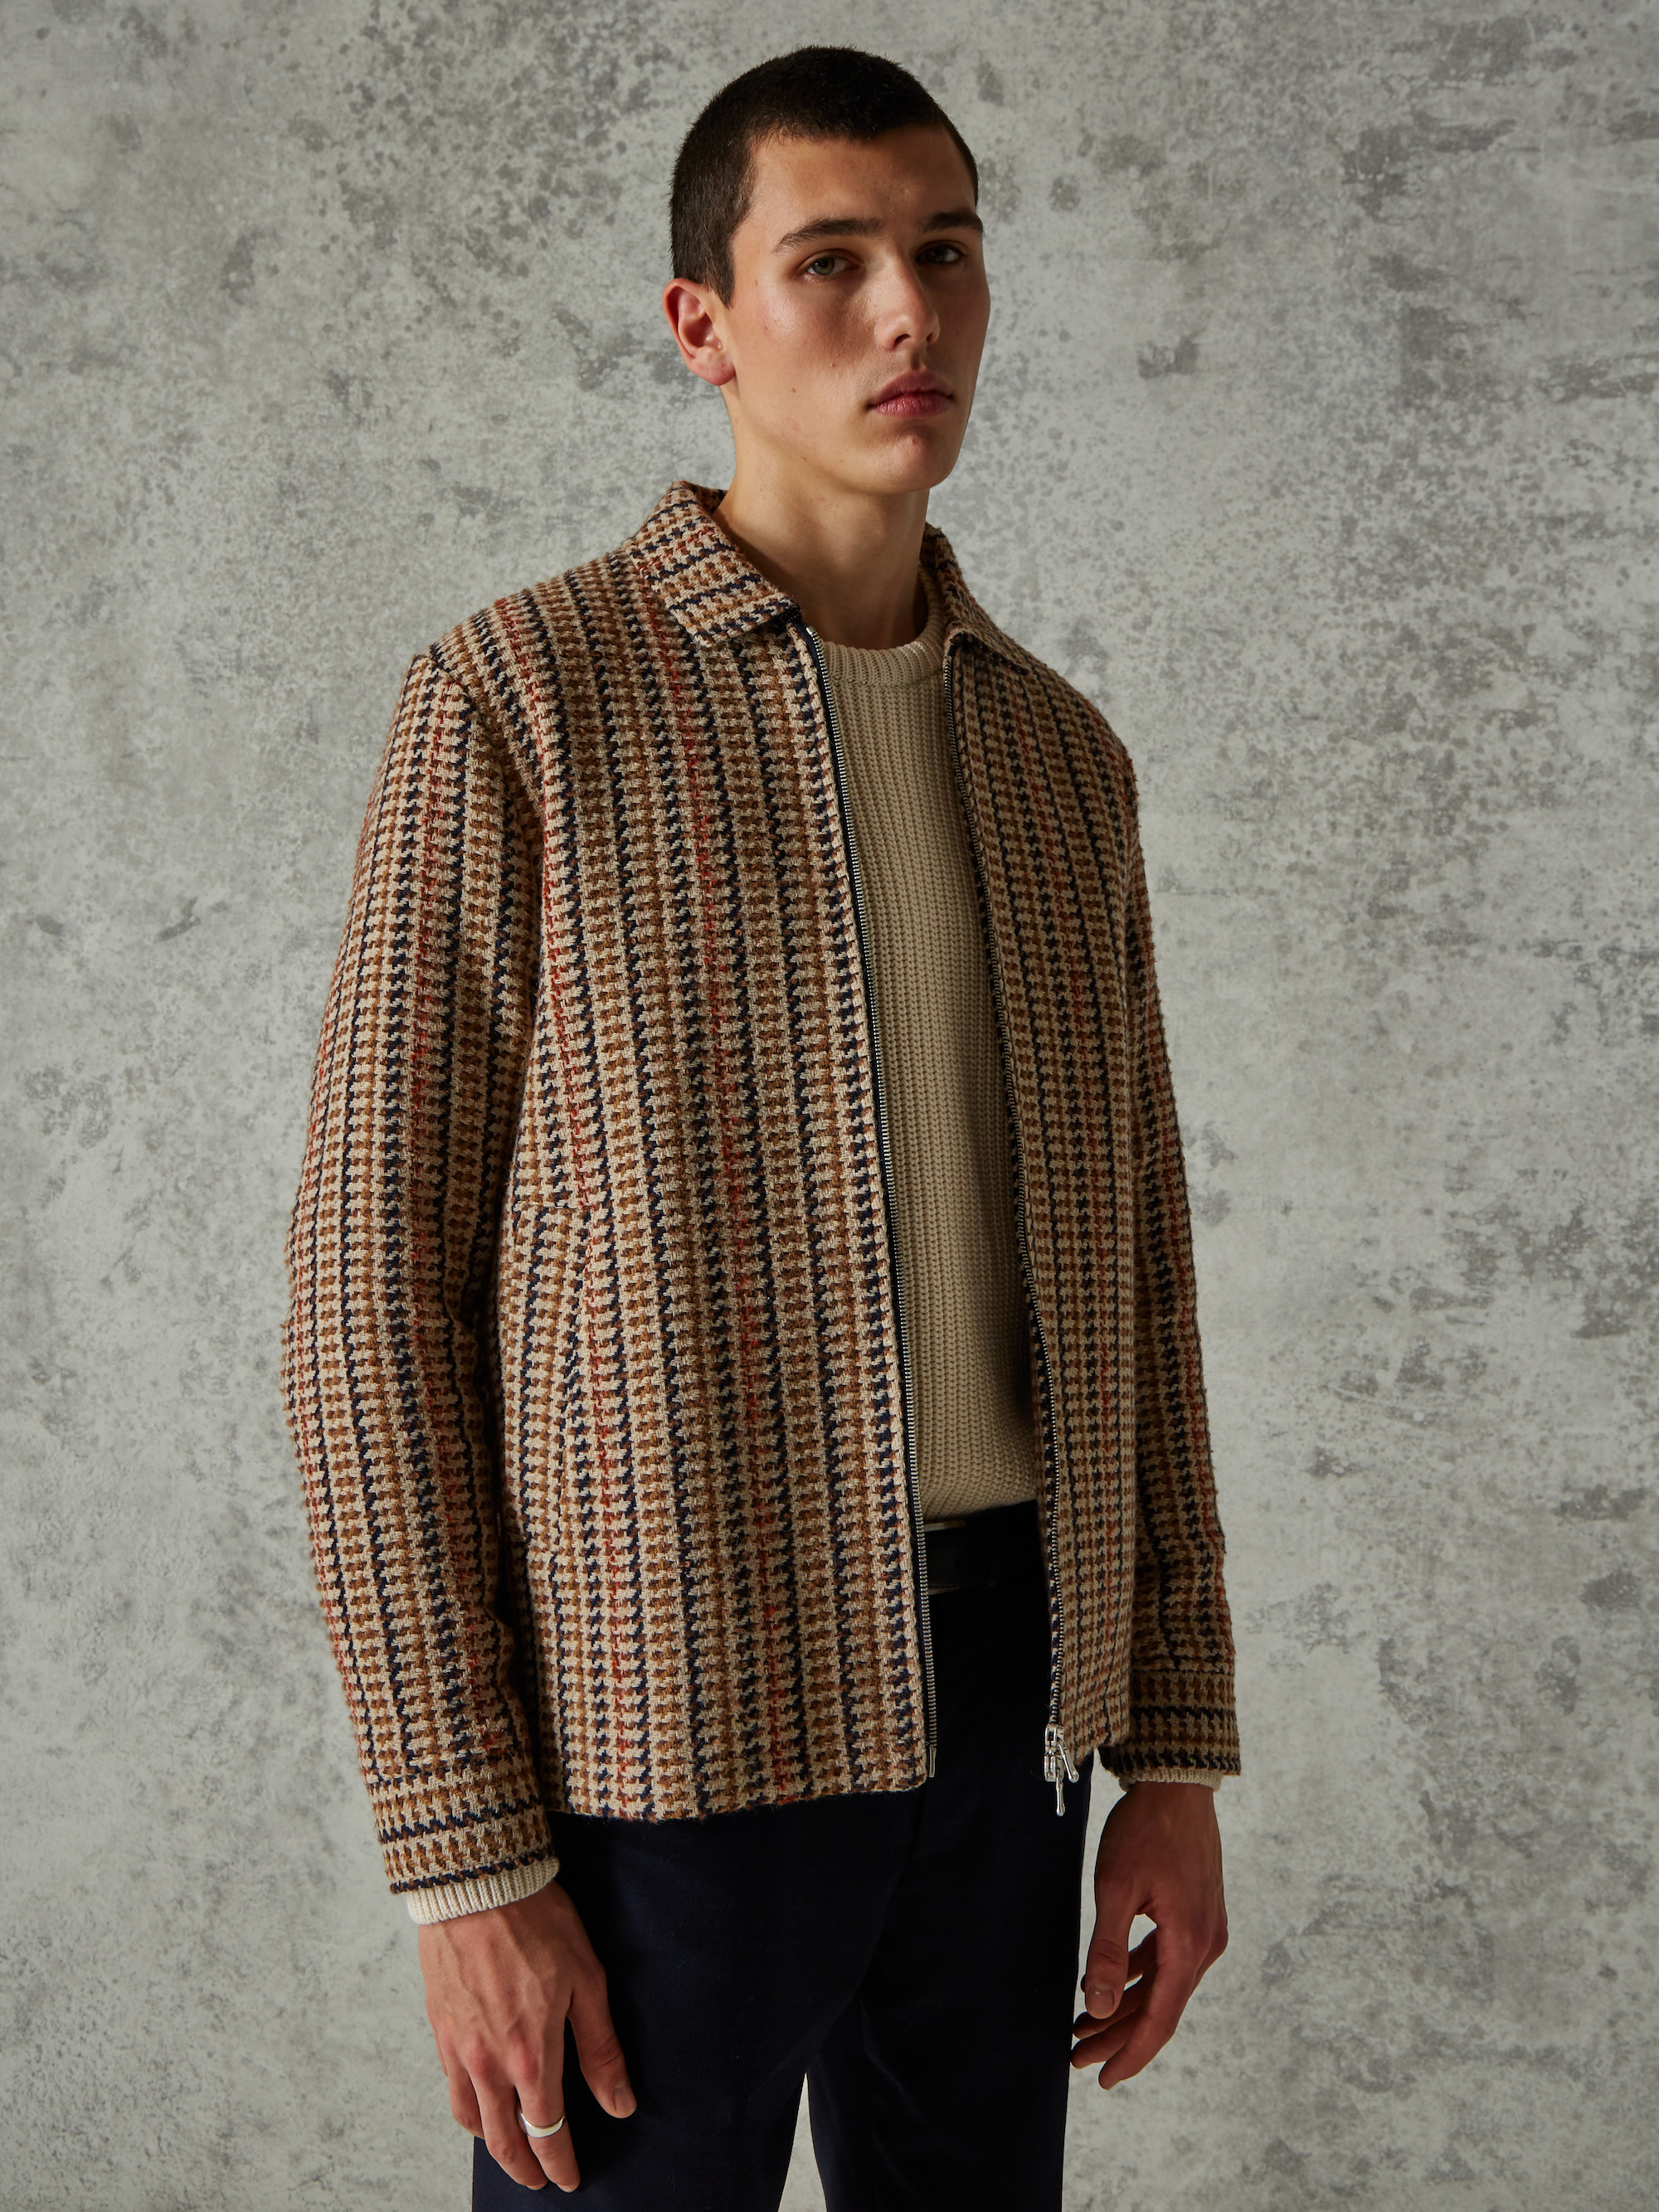 Wax London WOODS COACH JACKET - BROWN DOGTOOTH 2